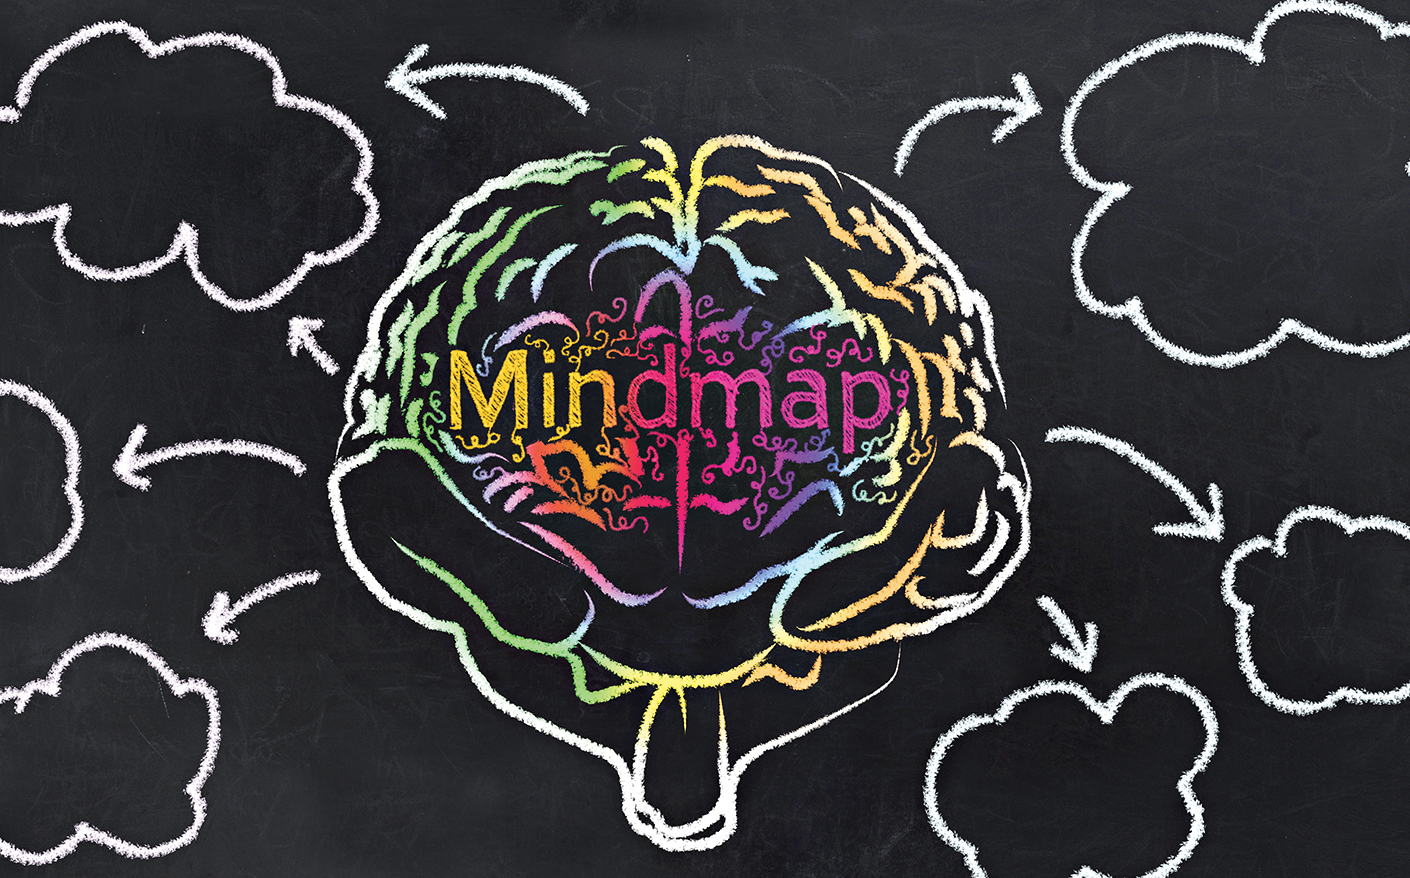 A mind map is a diagram or graphic layout used to visually organise information. It is created around a single concept, drawn as an image in the centre of a blank page, to which associated representations of ideas such as images, words and parts of words are added.